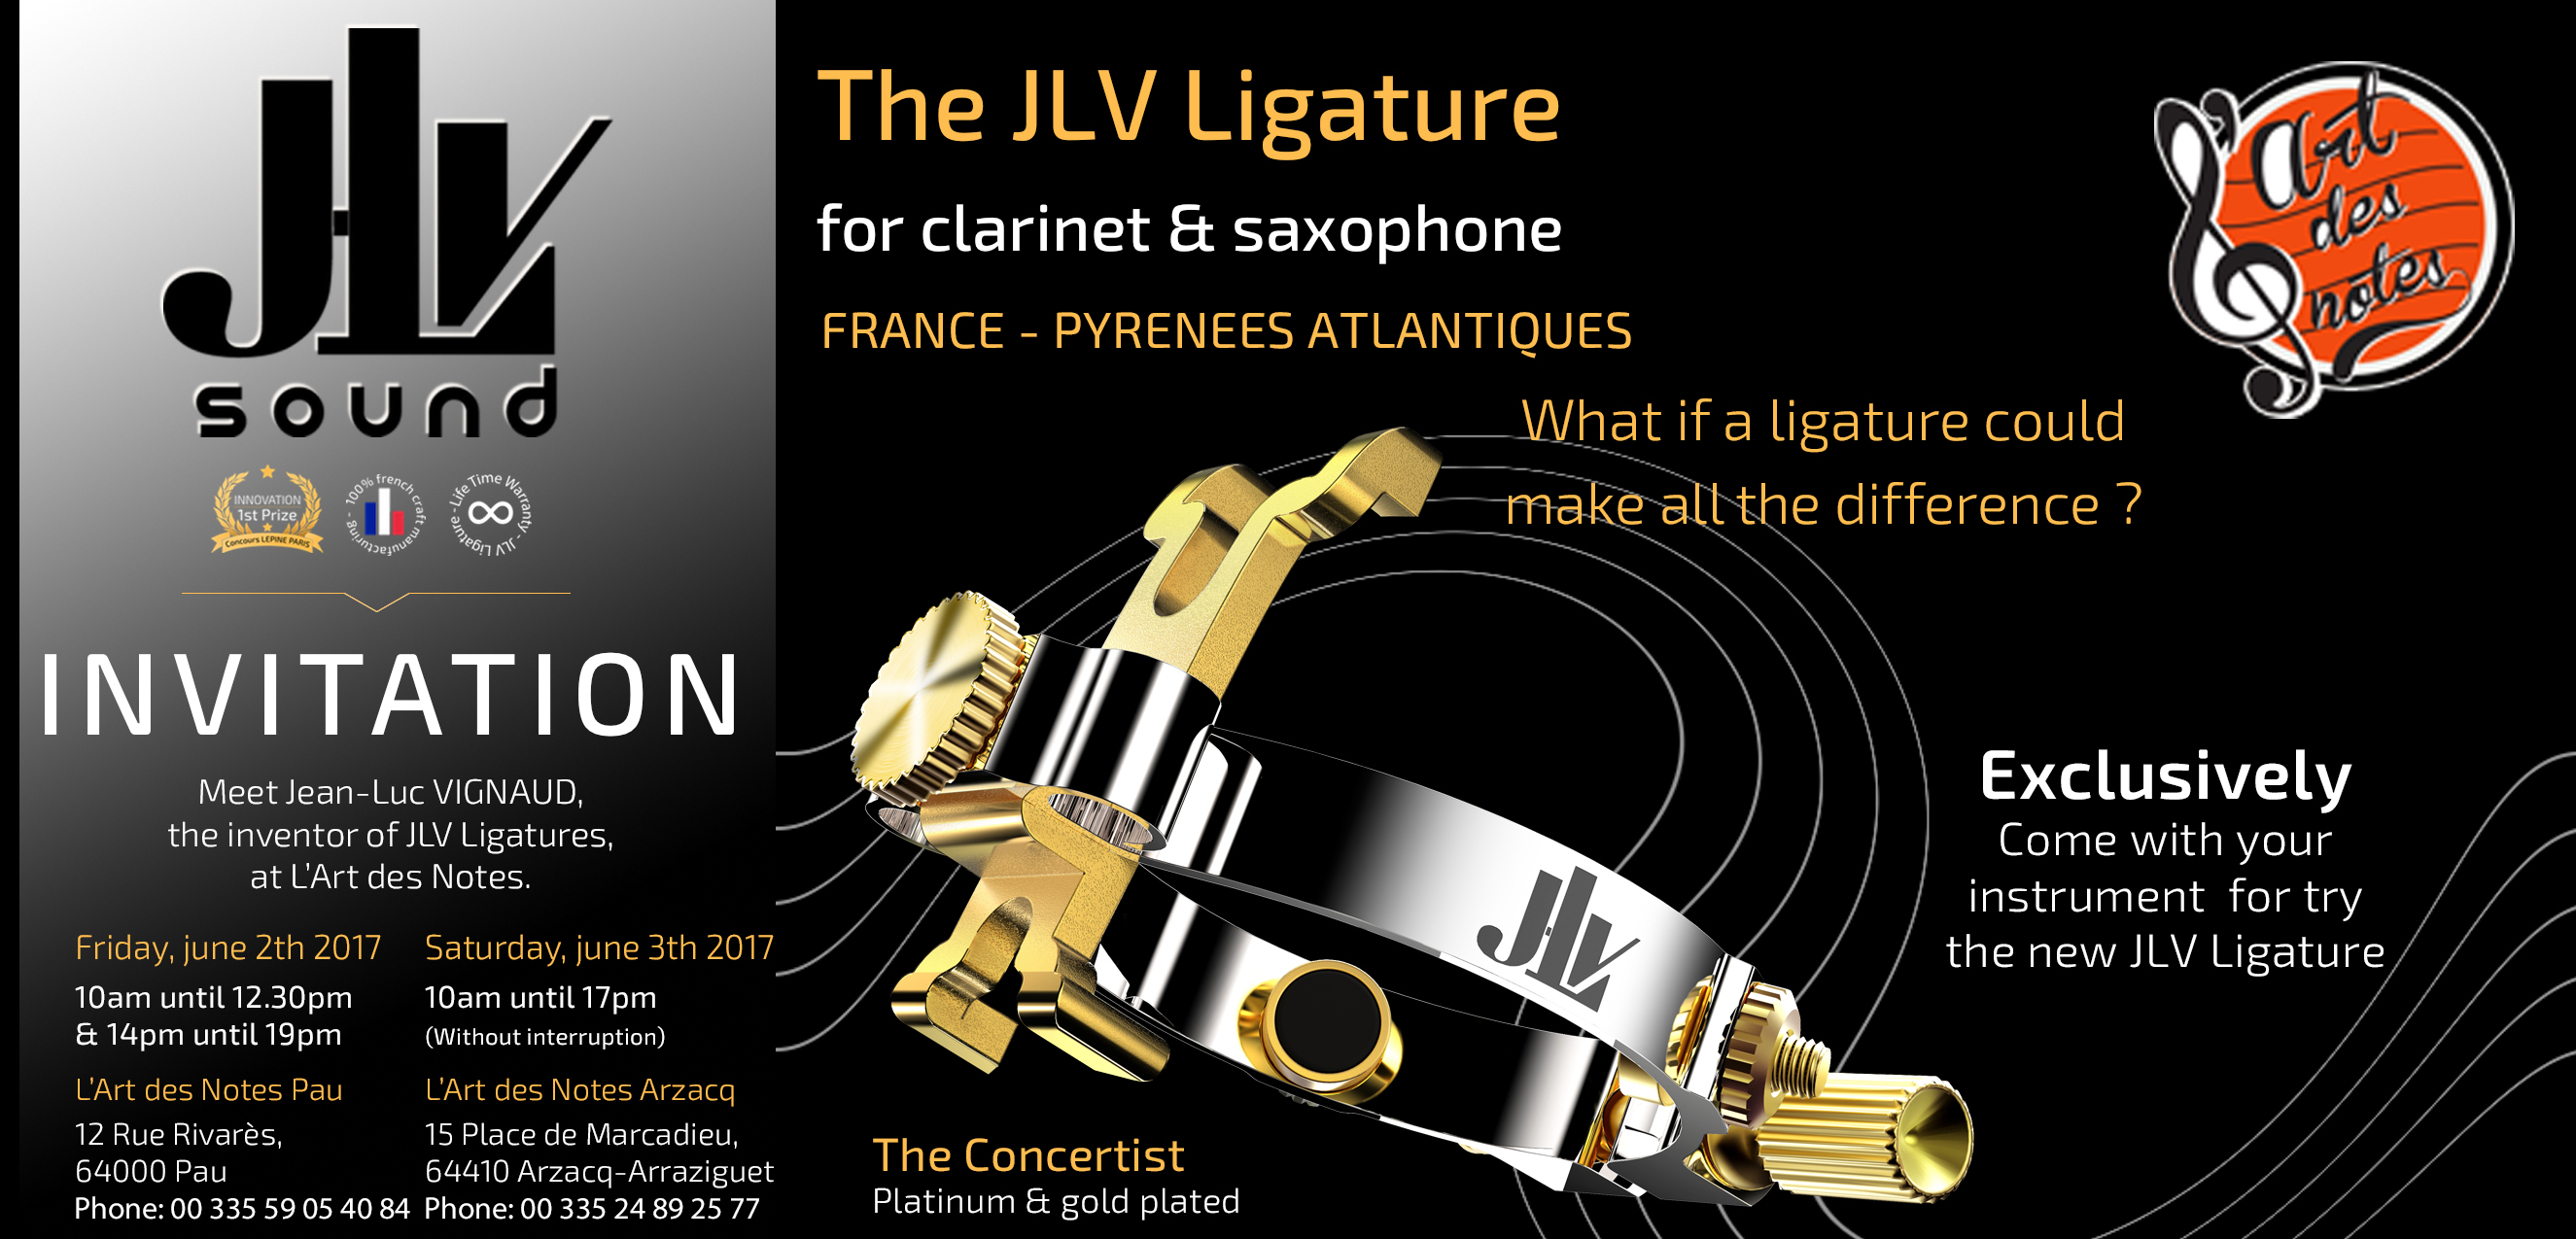 Event in Pau and Arzacq on 2 and 3 June 2017 with the inventor of the JLV Ligatures